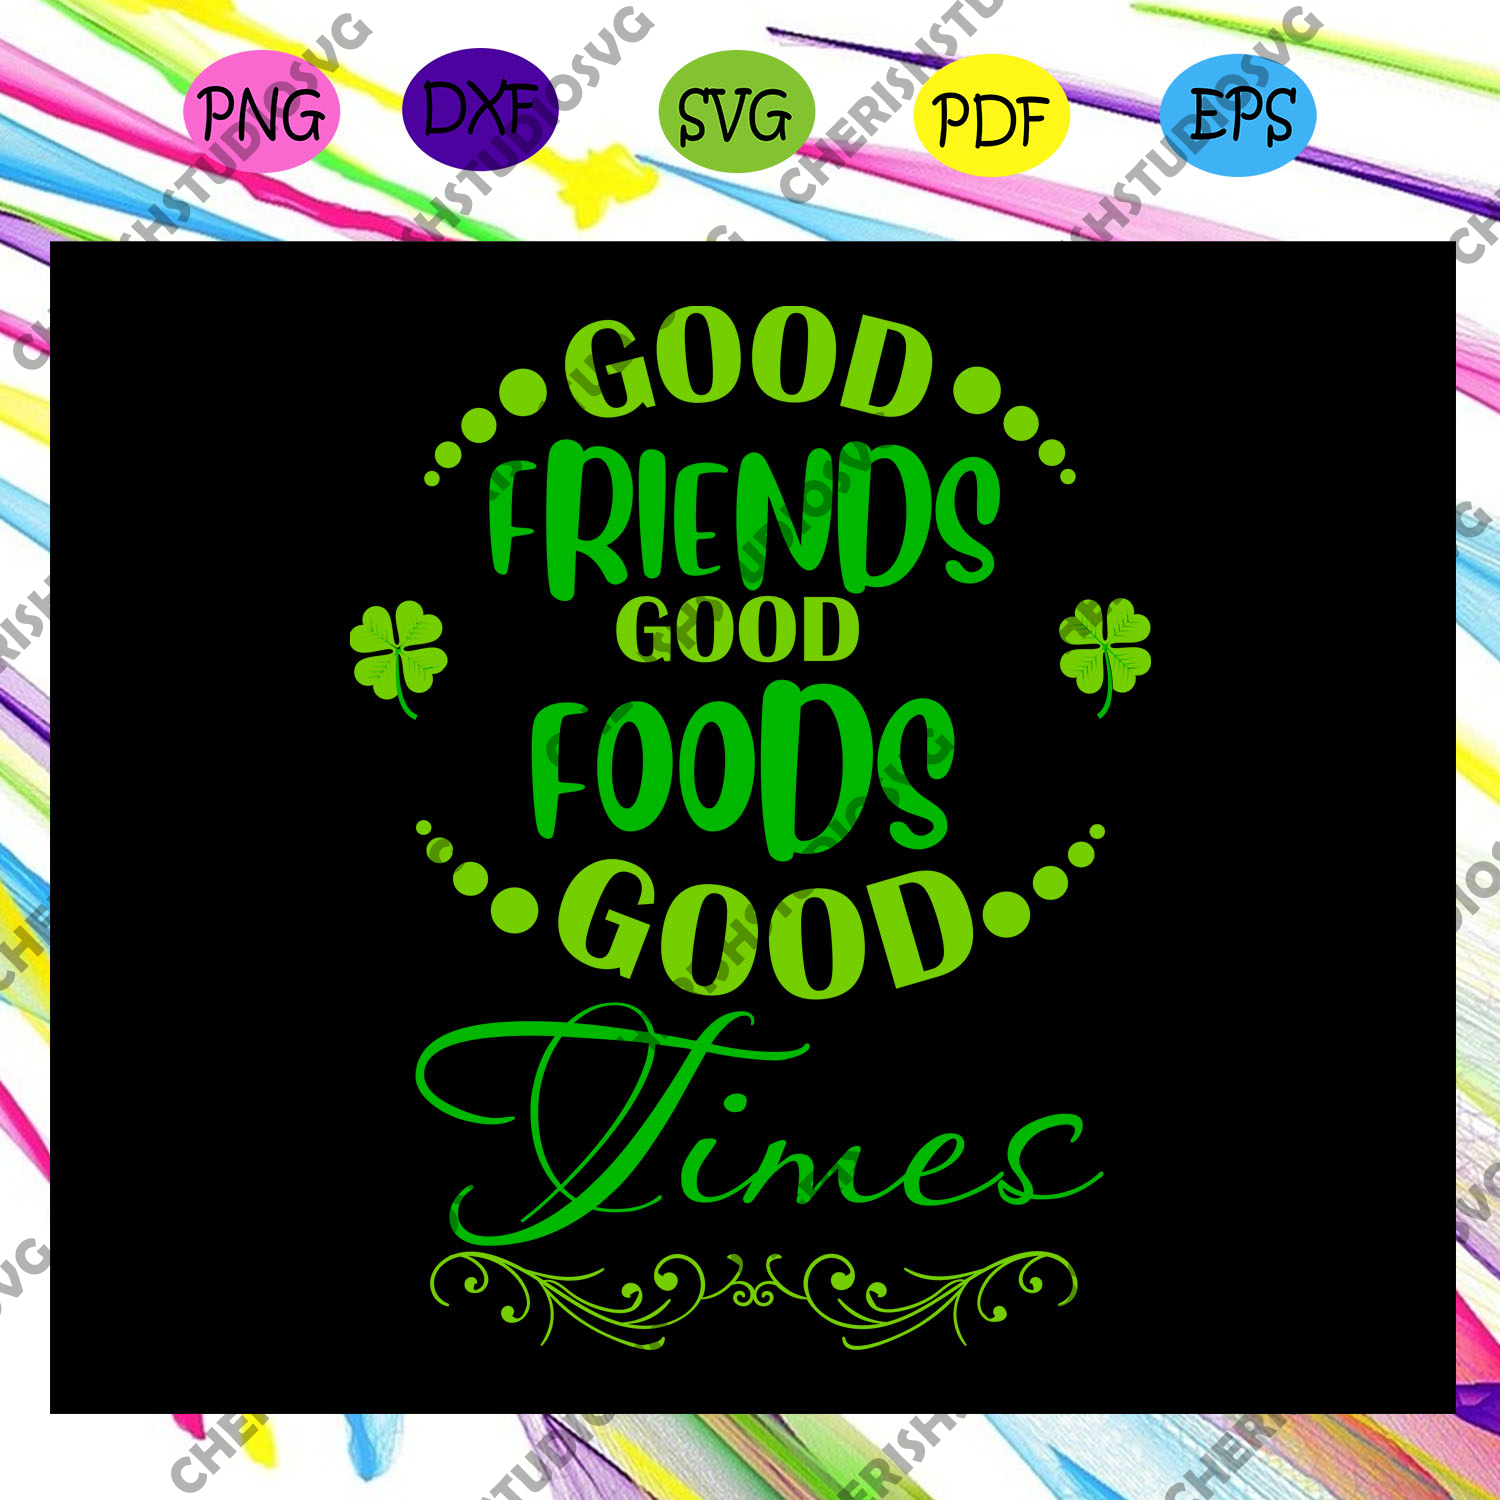 Good friends goof foods good times, gift for friend, best friend gift, friends, friends svg, best friend, friends svg, trending svg, Files For Silhouette, Files For Cricut, SVG, DXF, EPS, PNG, Instant Download